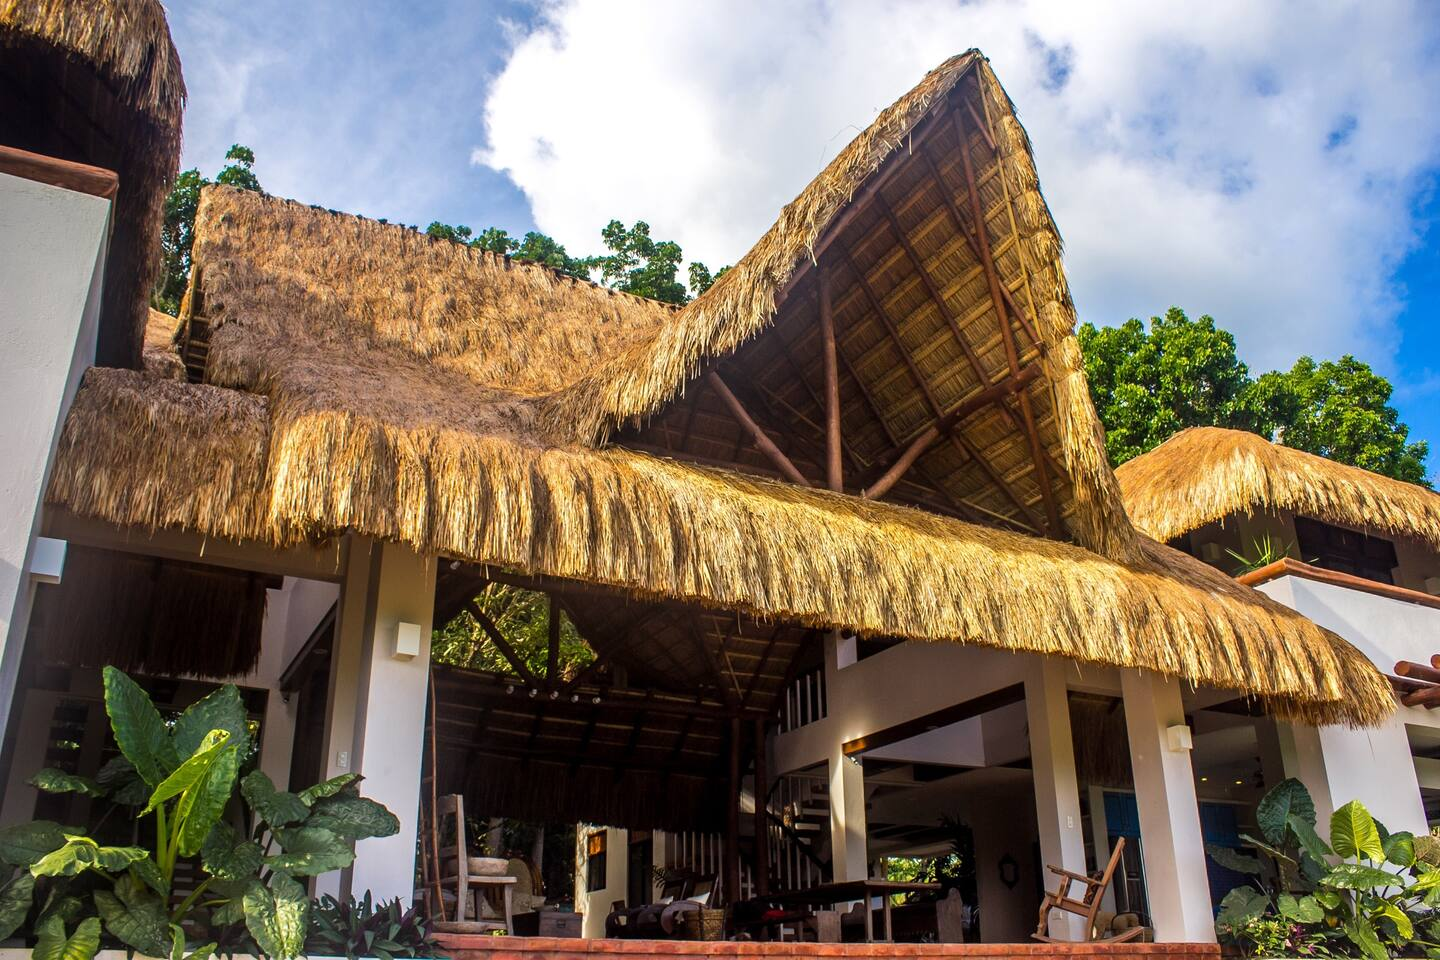 La Casita de Baclayon, luxurious and comfortable, yet environmentally sustainable, and integrated within the surrounding rainforest, overlooking the Bohol Sea.